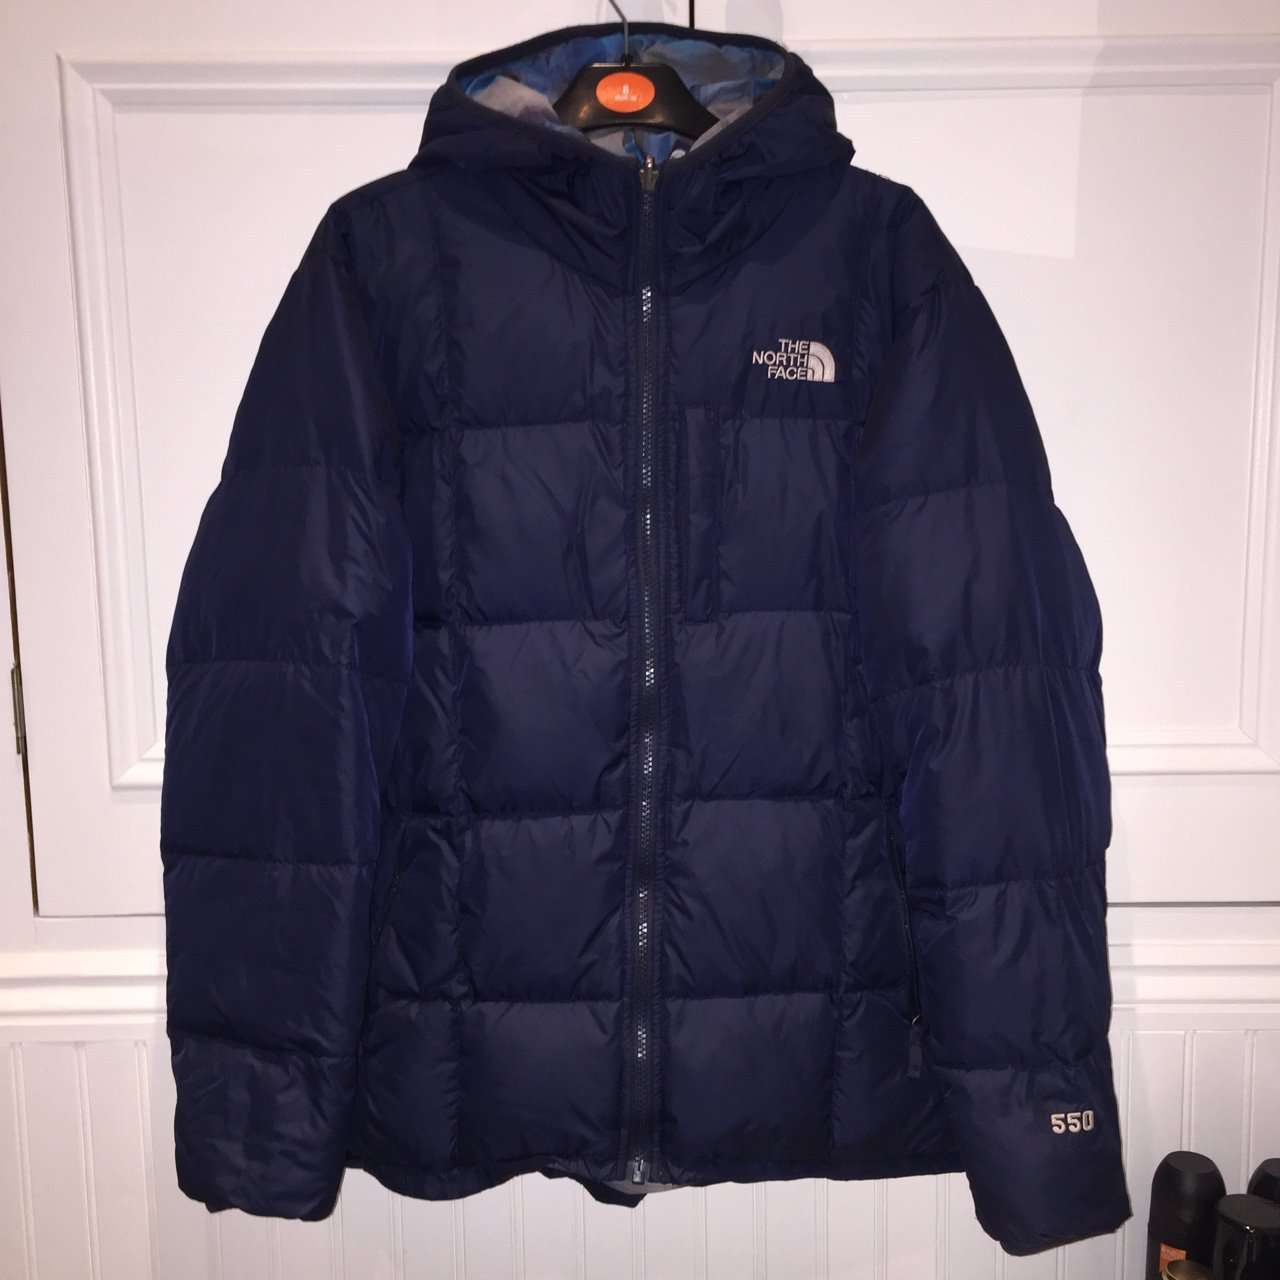 Navy blue north face 550 down puffer jacket    puffa coat. a - Depop 4d14c6a548f6